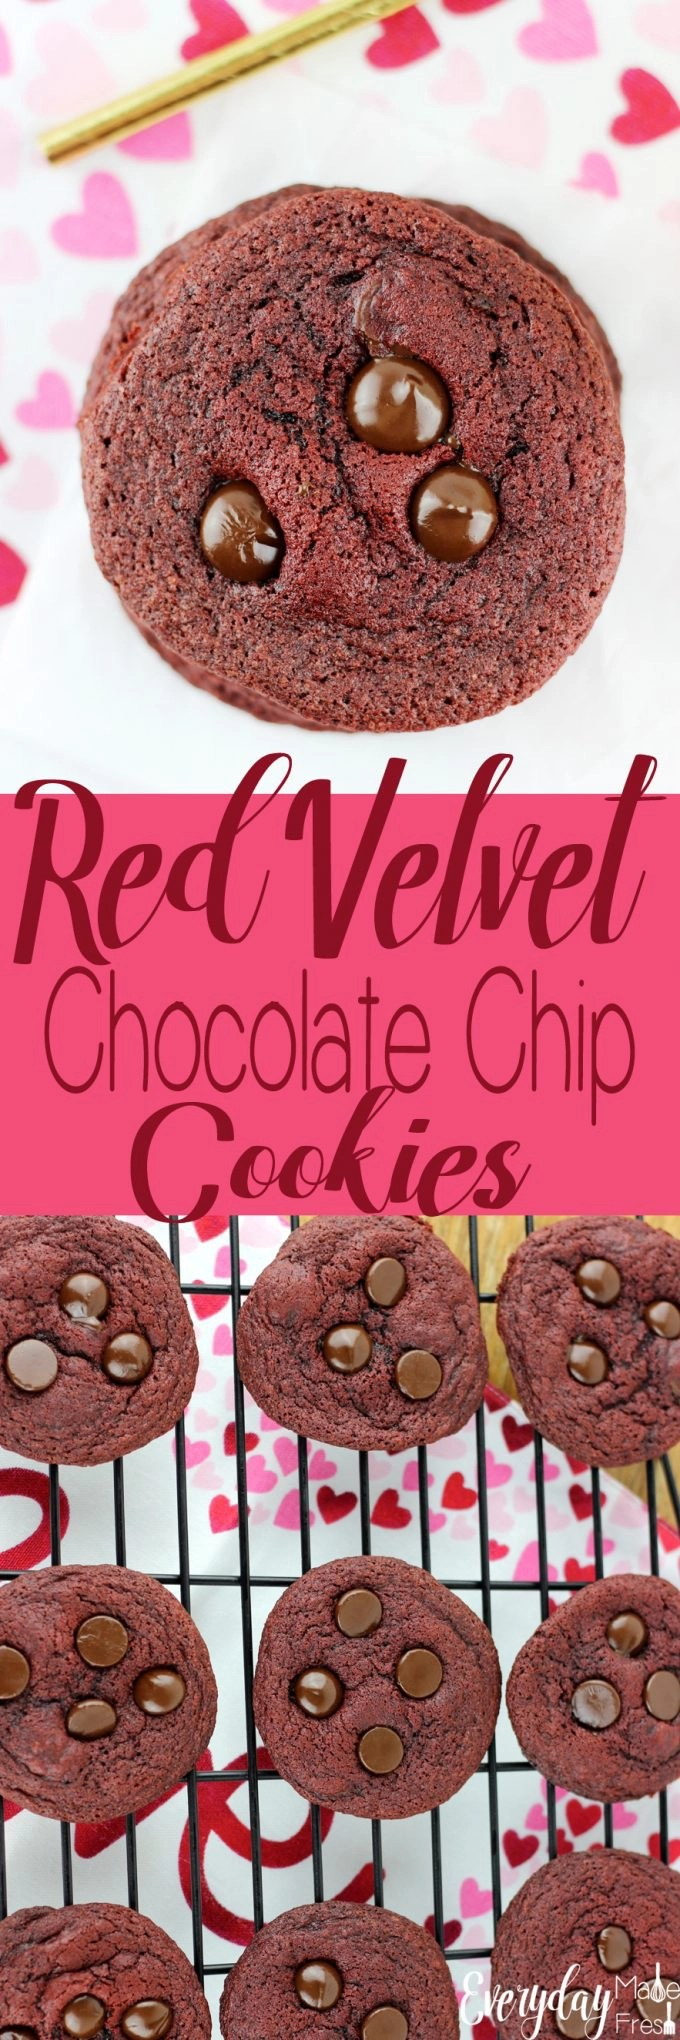 Just in time for Valentine's Day, these Red Velvet Chocolate Chip Cookies are rich, and loaded with dark chocolate chips! | EverydayMadeFresh.com